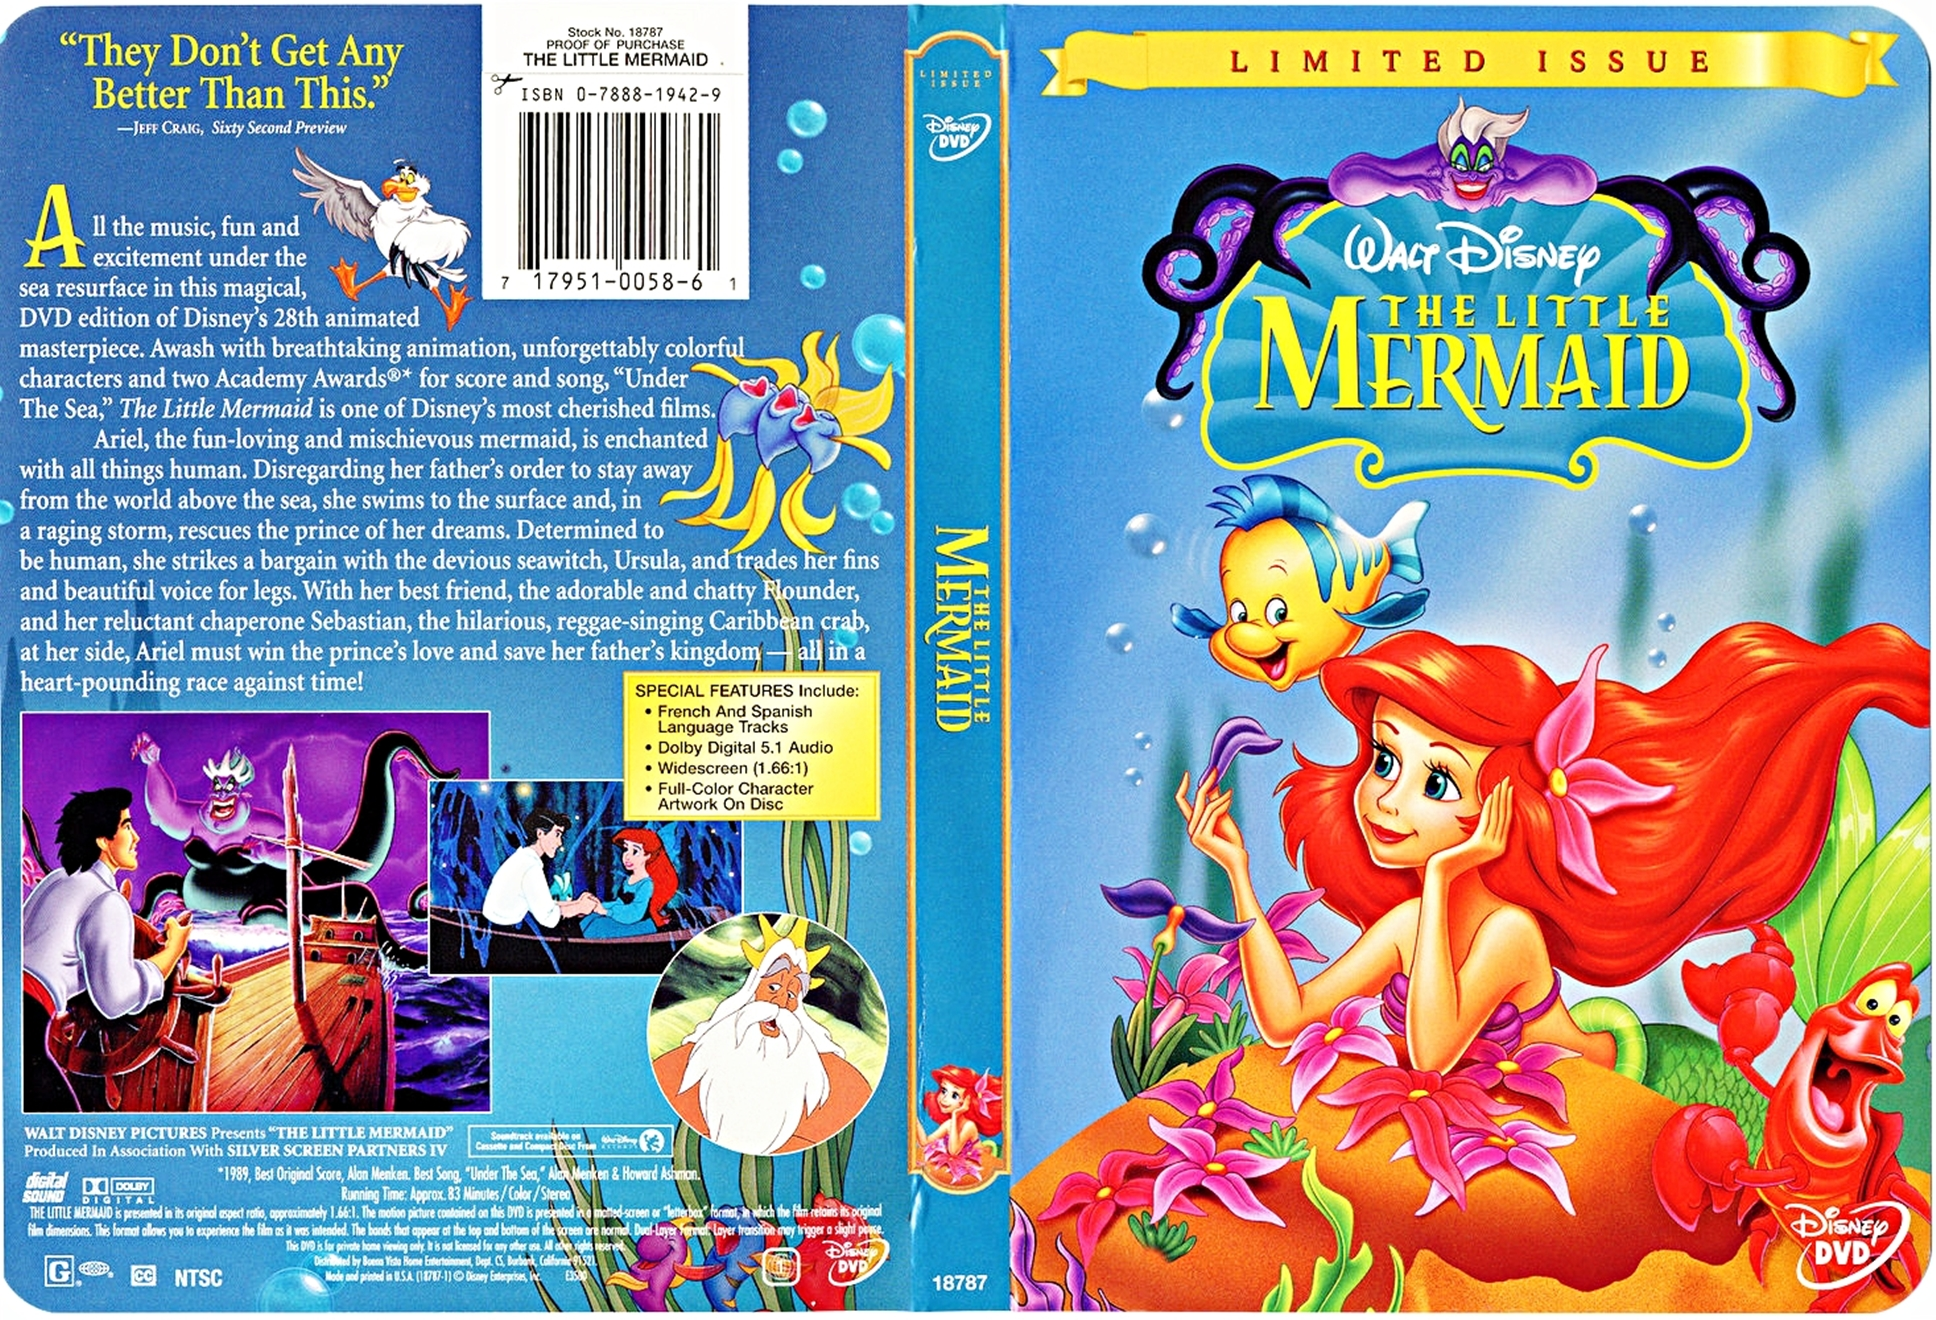 Walt Disney DVD Covers - The Little Mermaid: Limited Issue